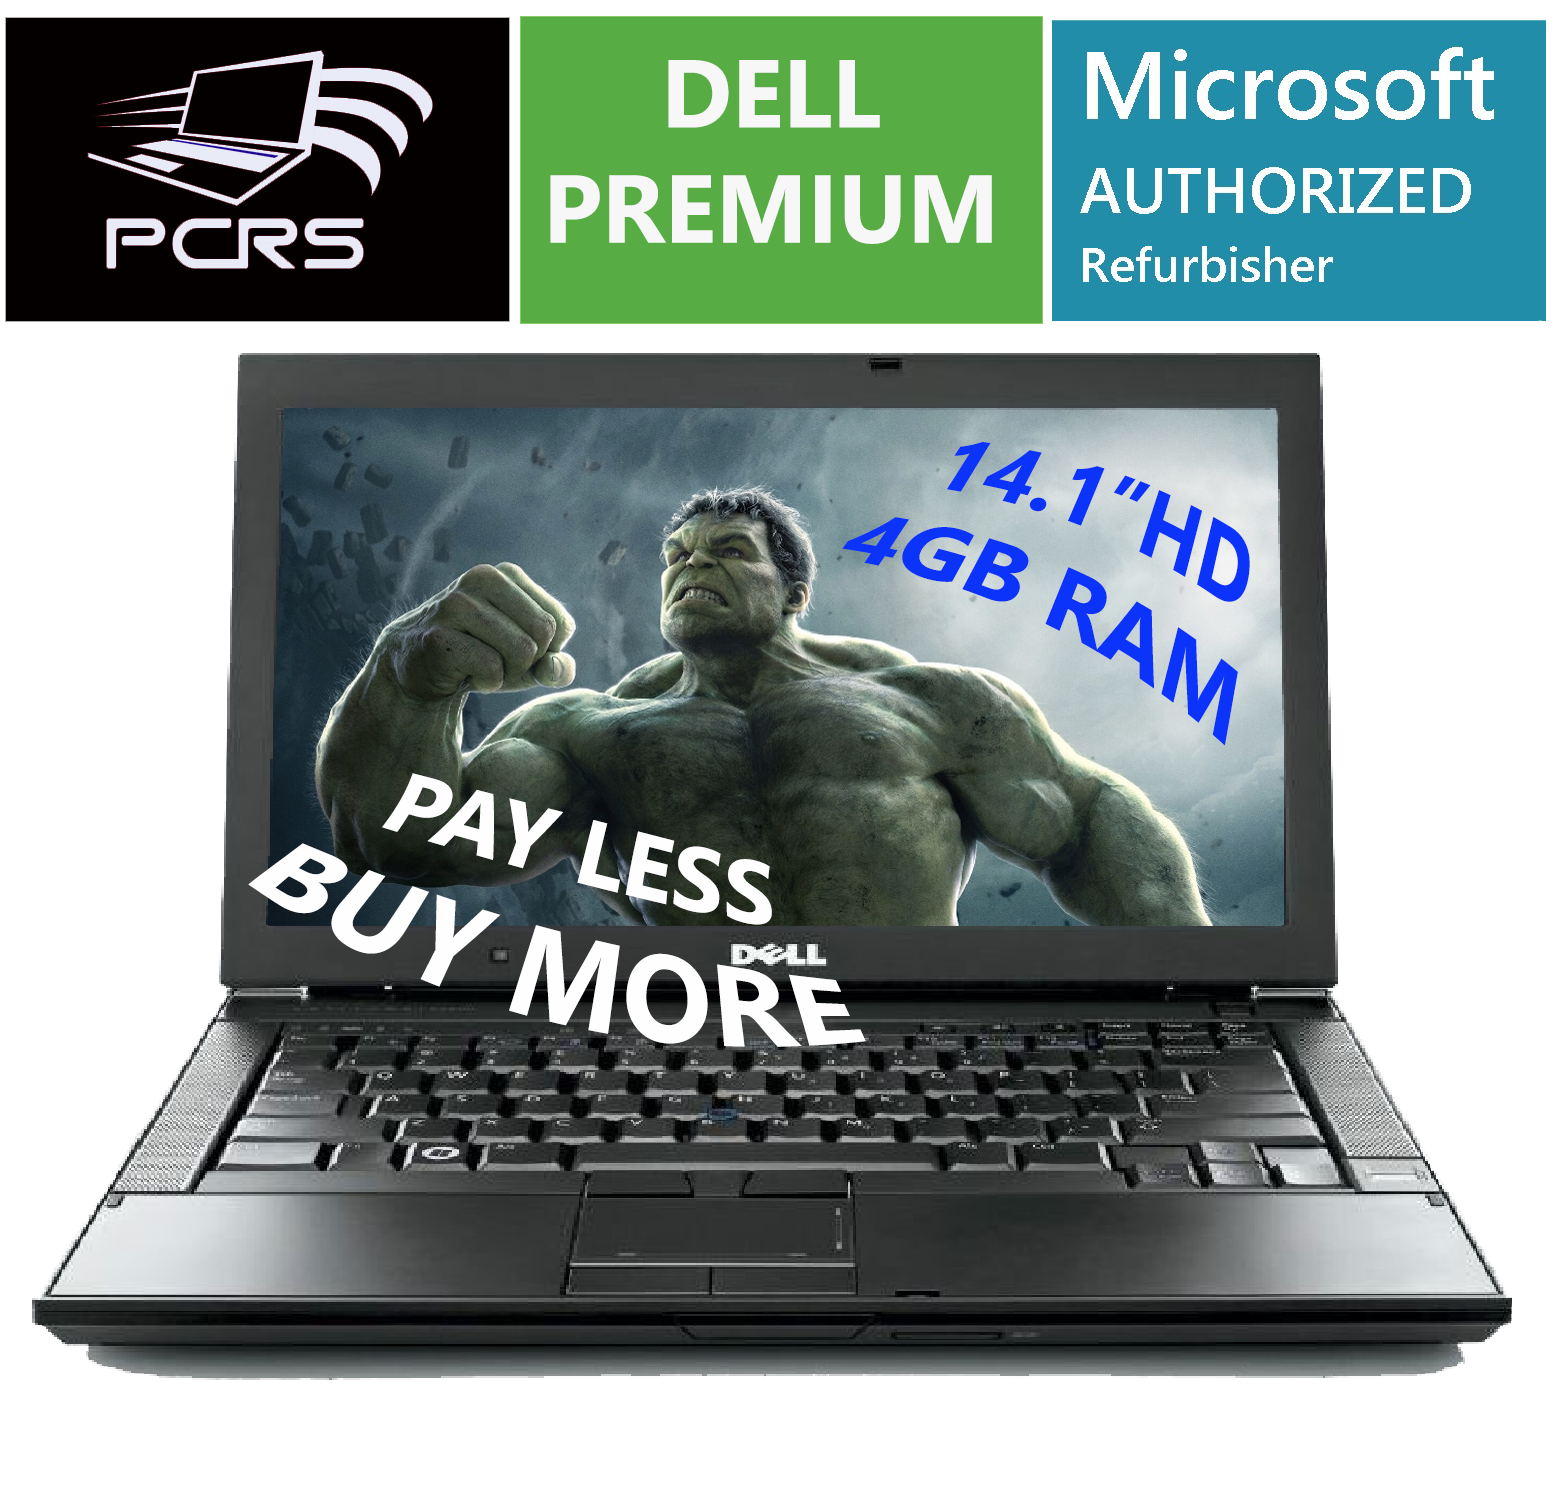 "Laptop Windows - DELL 14.1"" HD Latitude Laptop Intel Core Duo 2GHz 4GB RAM DVDRW WiFi Windows 10"